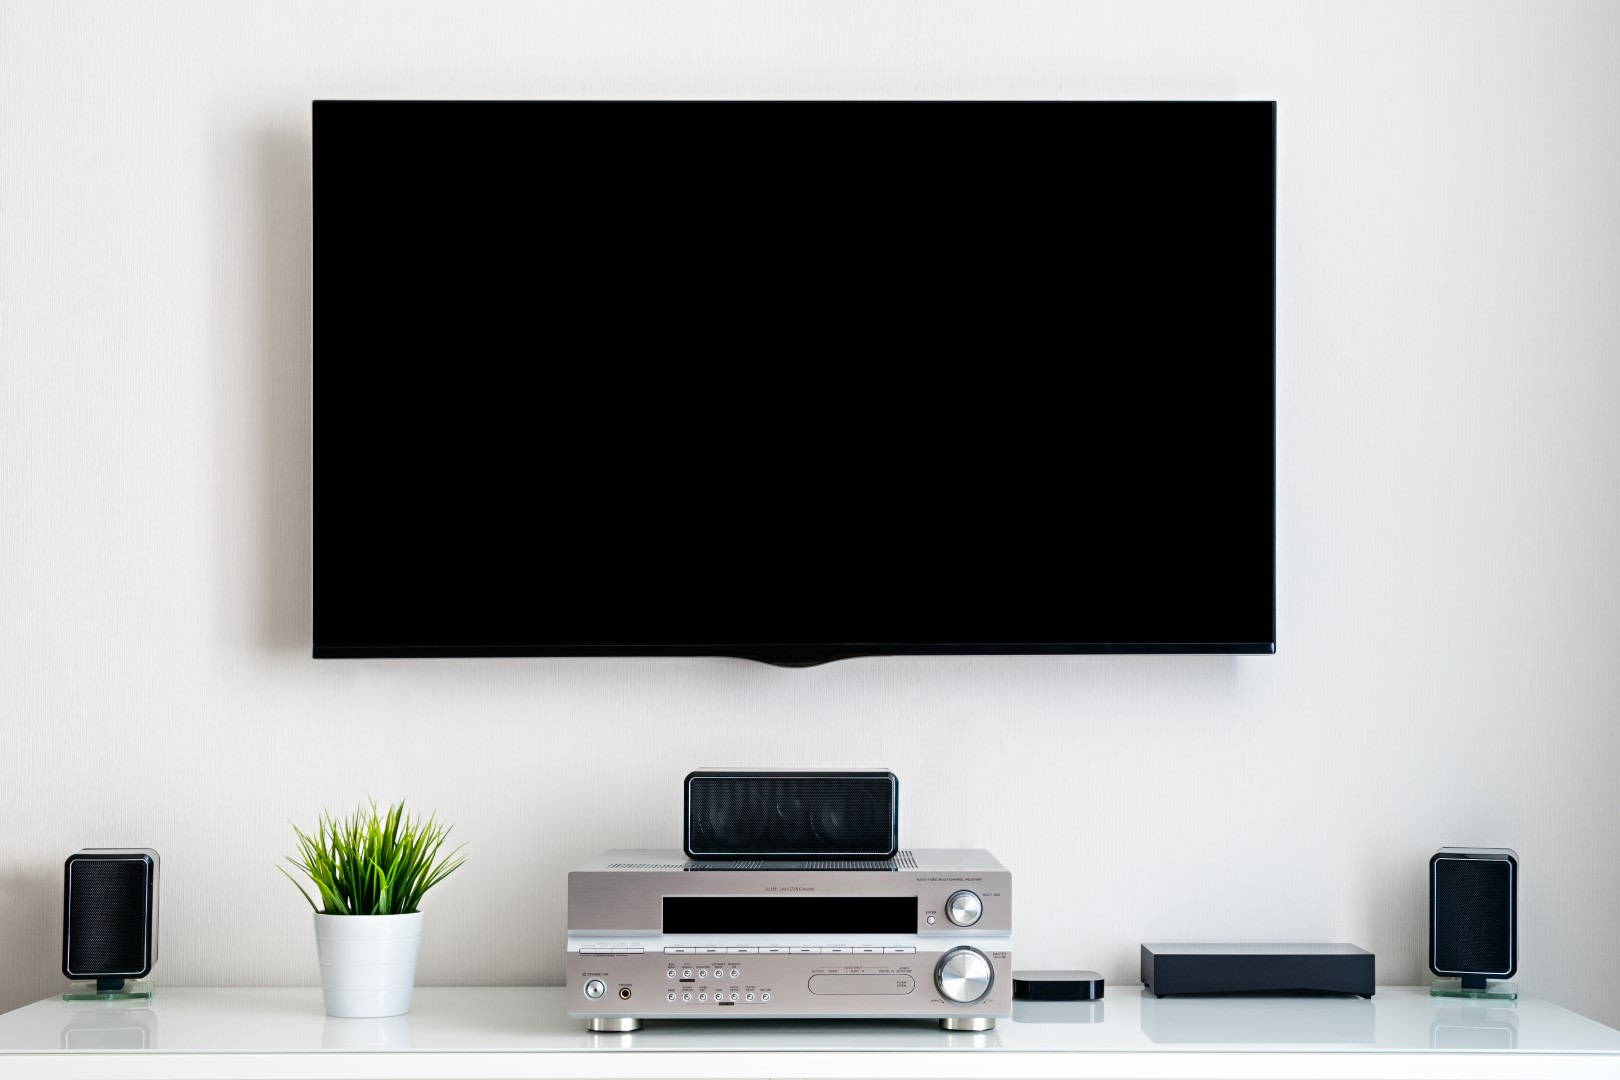 An image related to Best HD Roku Smart TVs